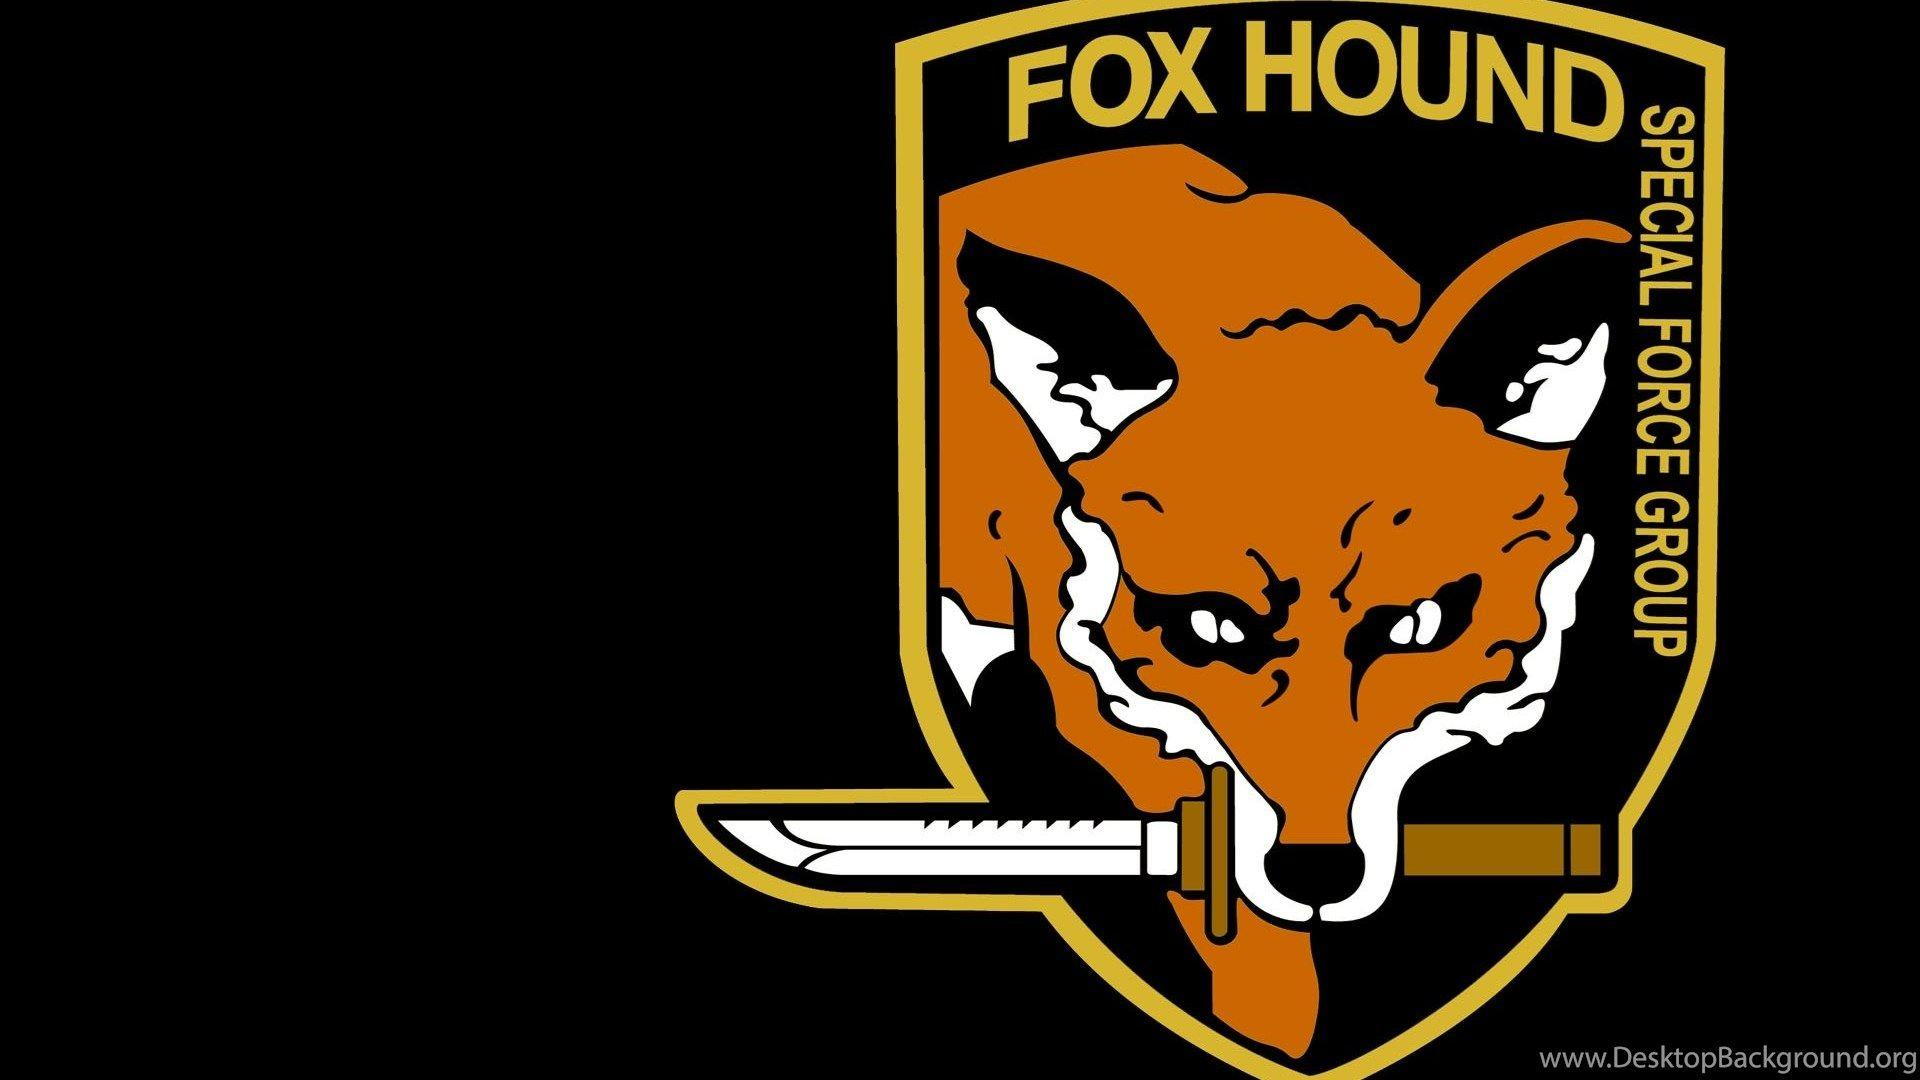 Foxhound Wallpapers dFcO 19177 Hd Pictures Desktop Backgrounds